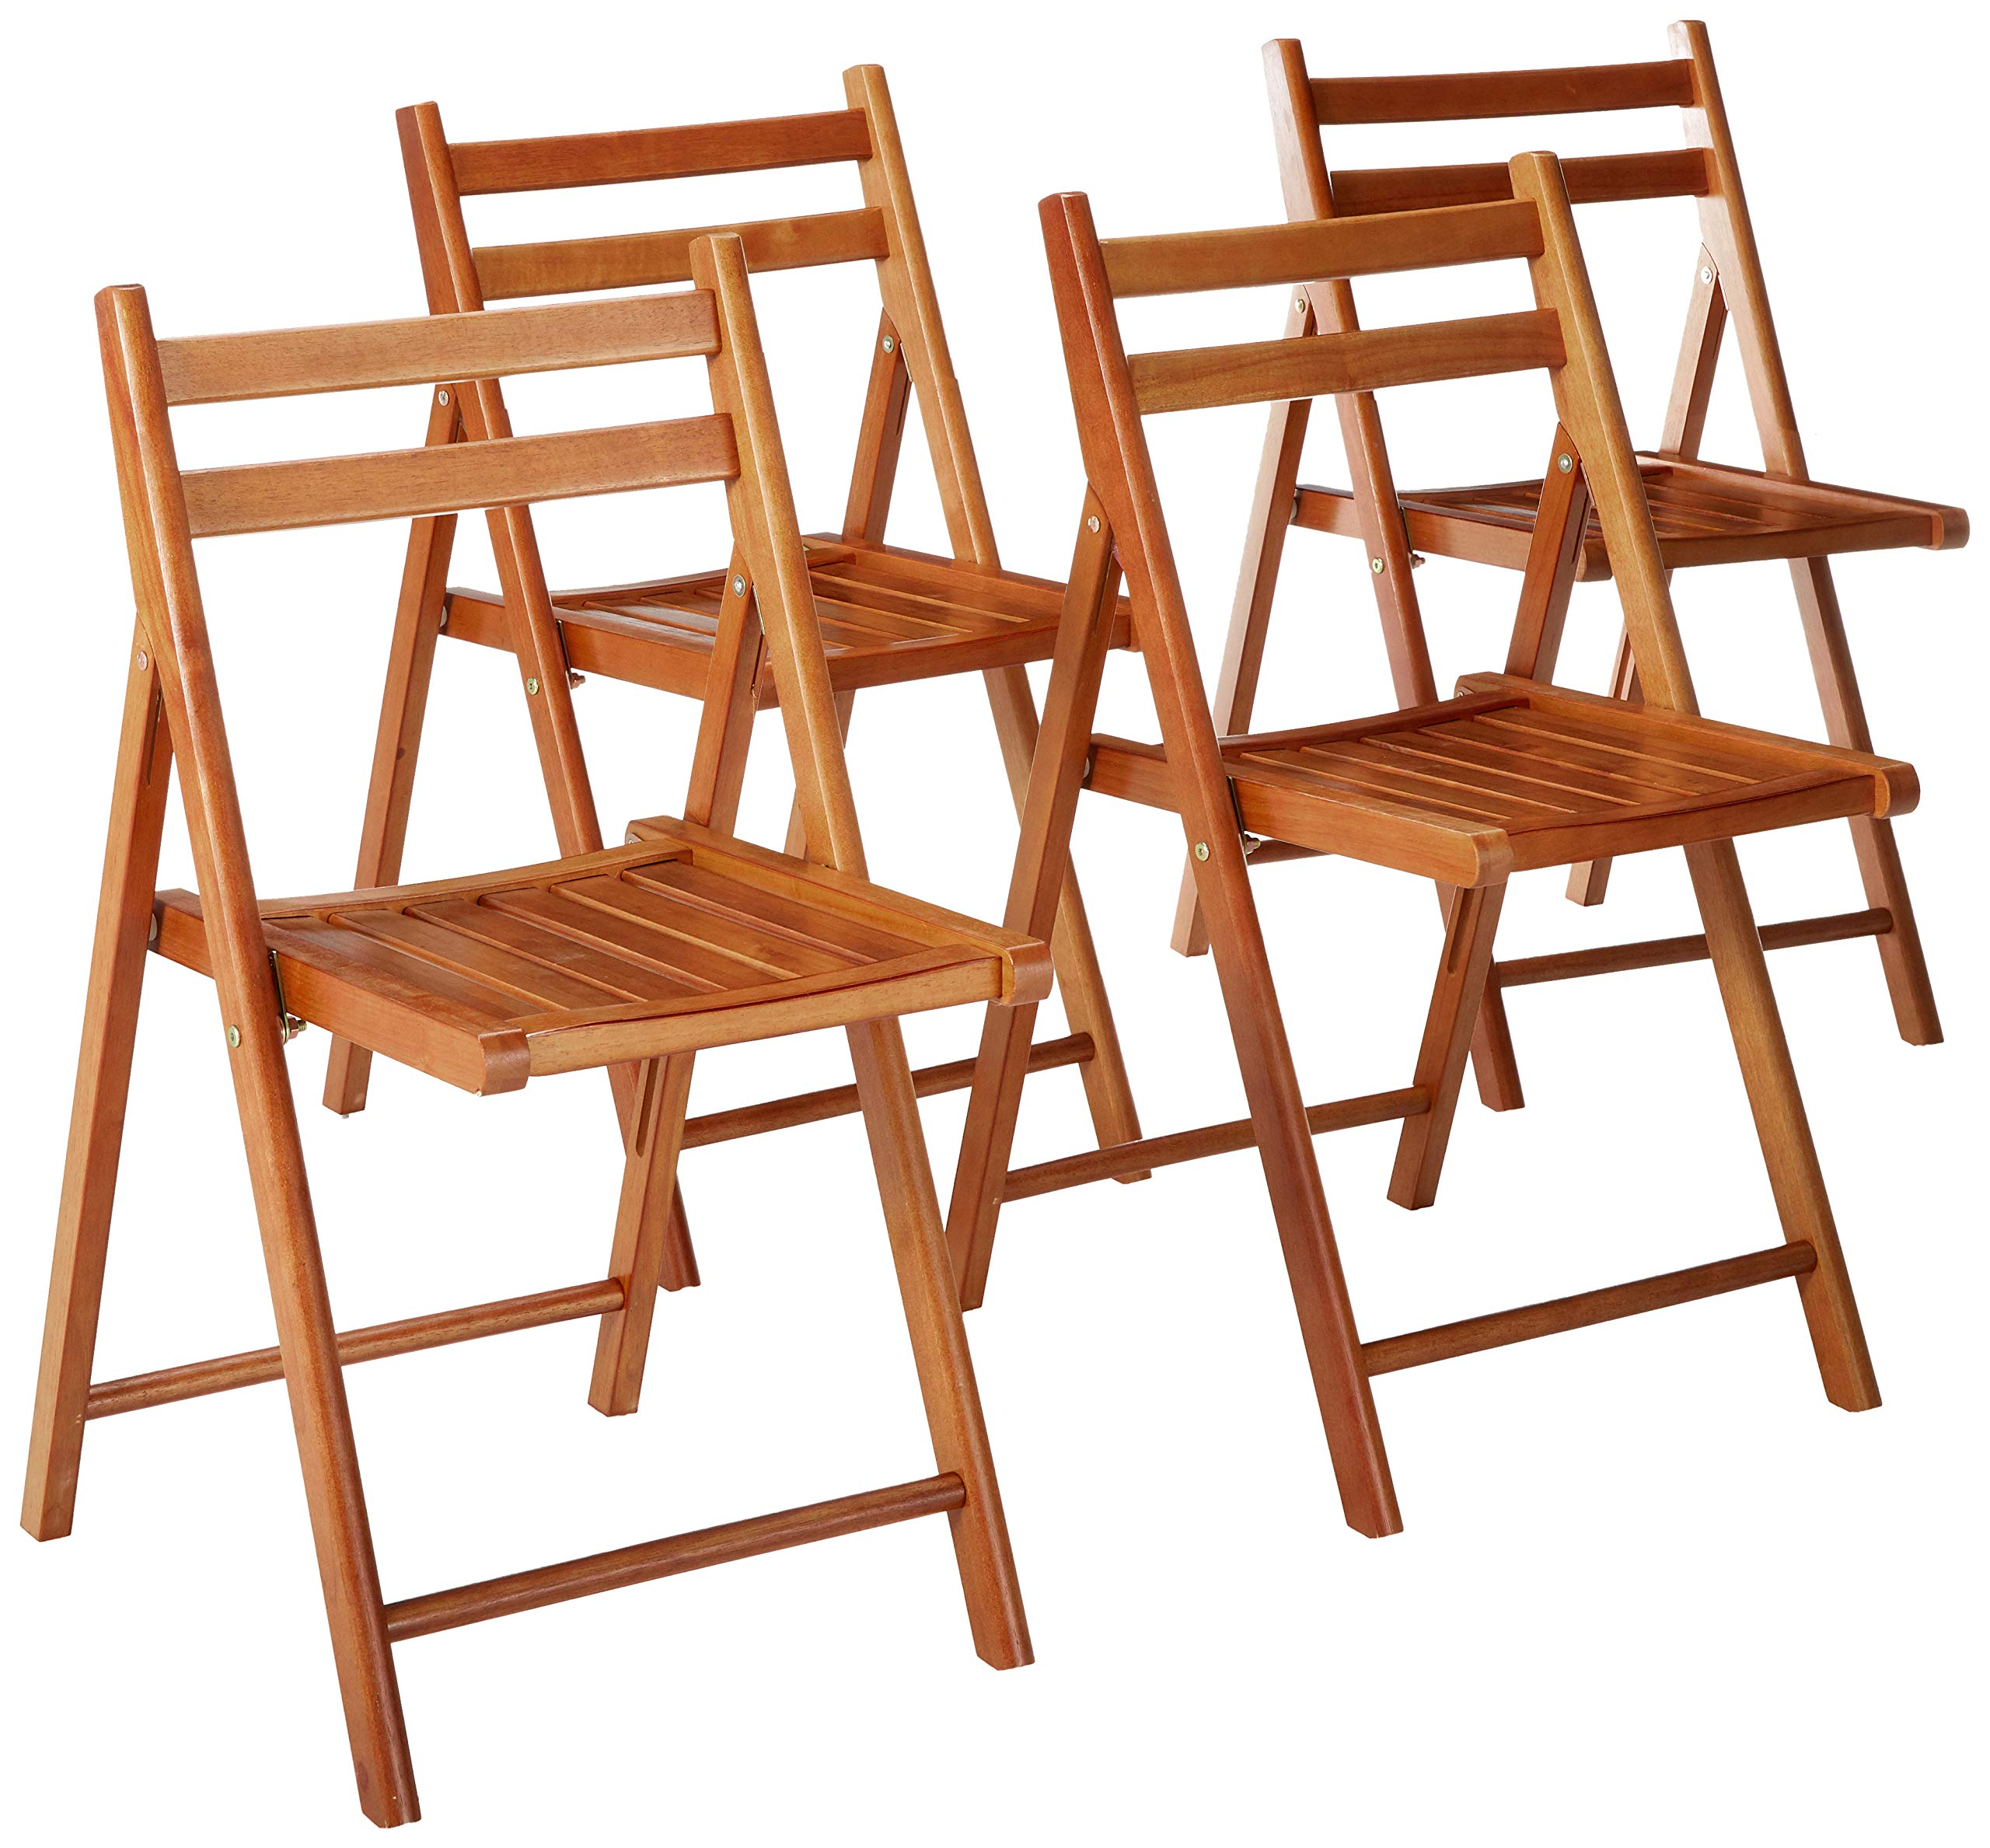 Winsome Wood 33415 Robin 4-PC Folding Set Teak Chair, by Winsome Wood (Image #1)